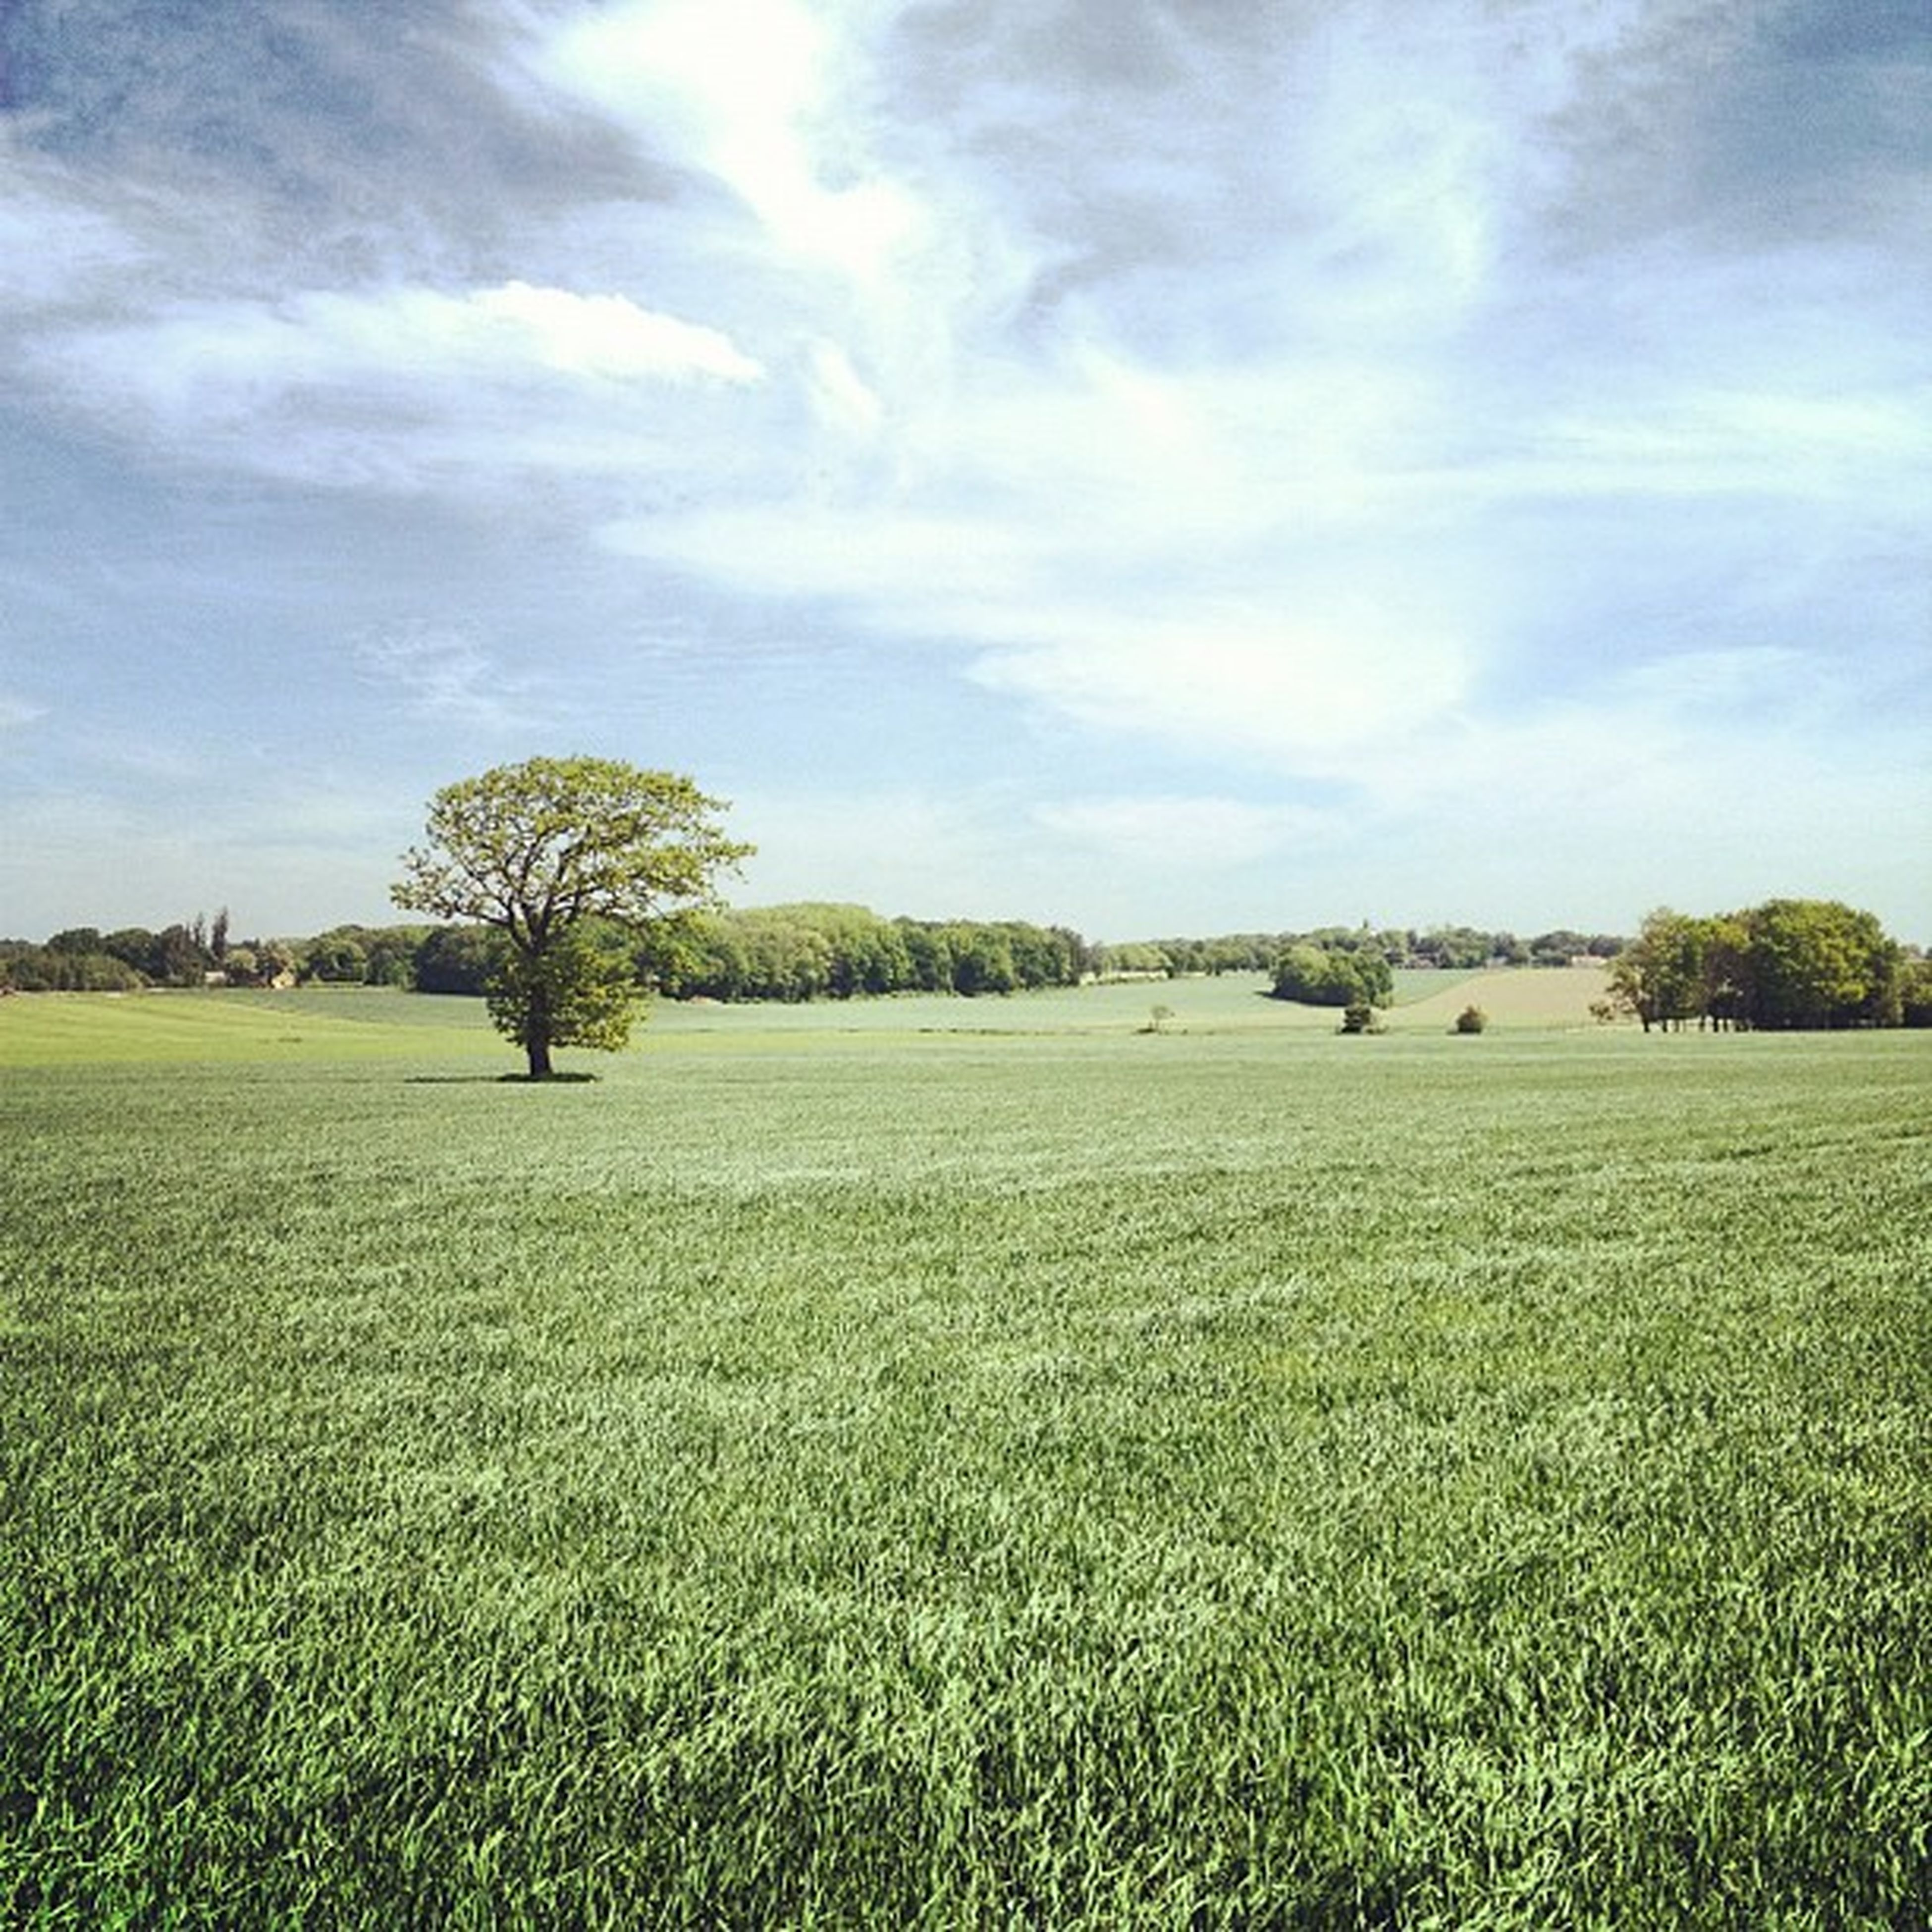 field, grass, landscape, sky, tranquil scene, tranquility, scenics, growth, beauty in nature, tree, rural scene, green color, nature, cloud - sky, grassy, agriculture, cloud, farm, idyllic, crop